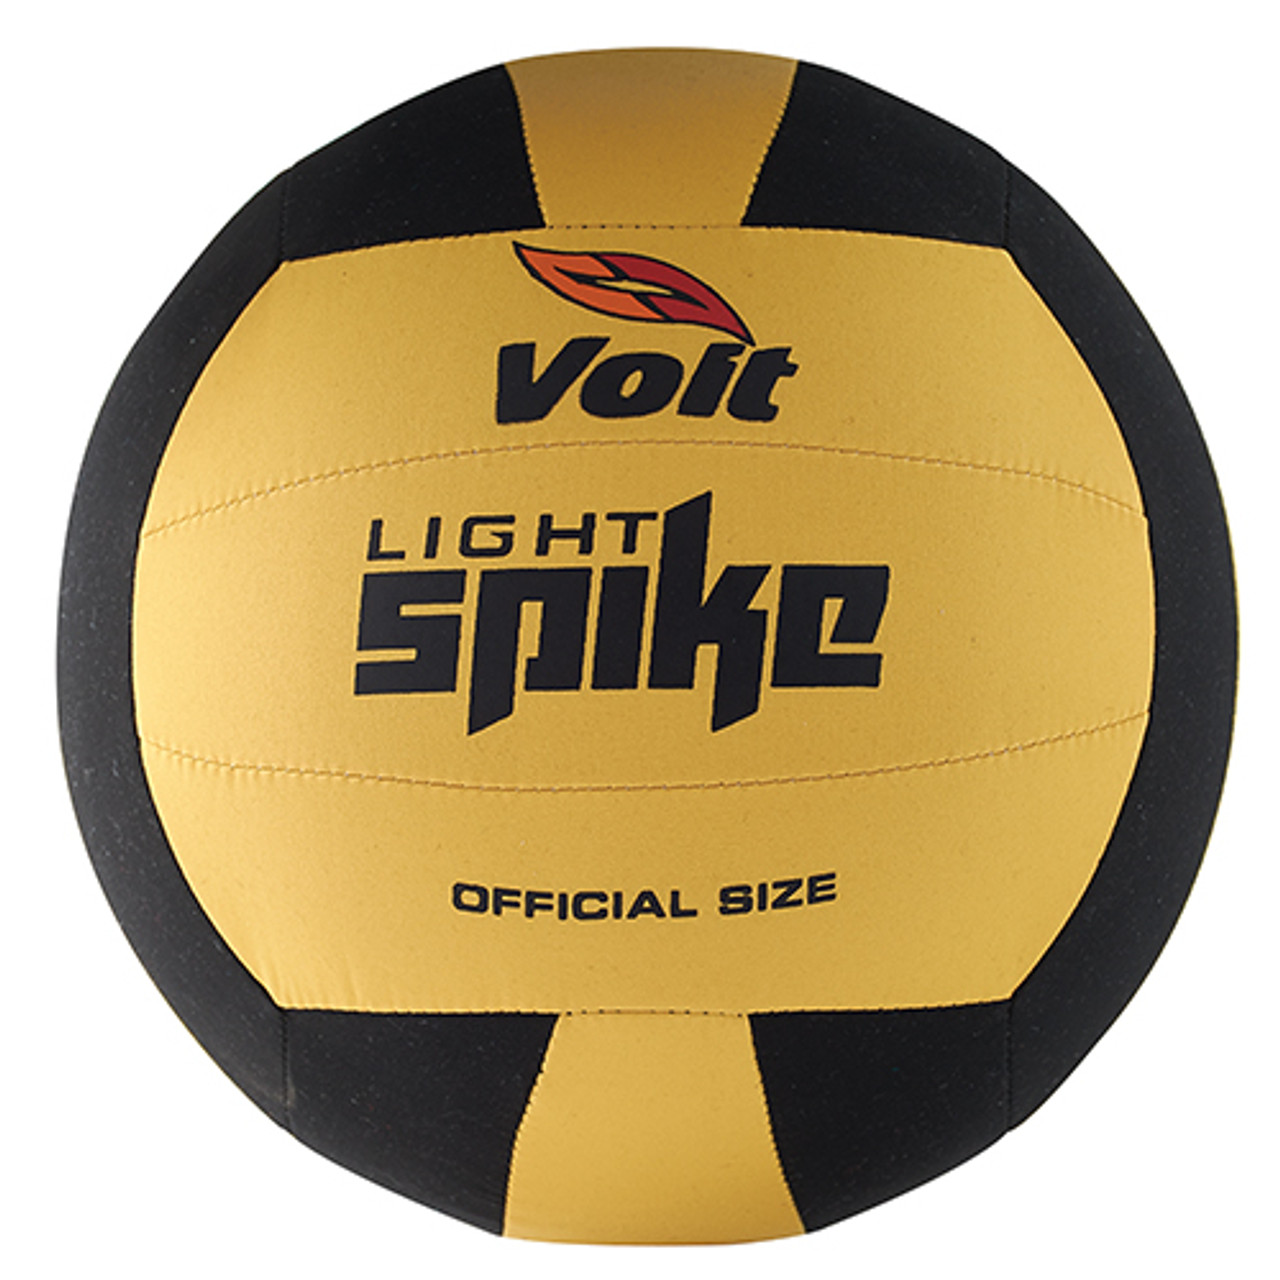 Voit Light Spike Official-Size Training Volleyball